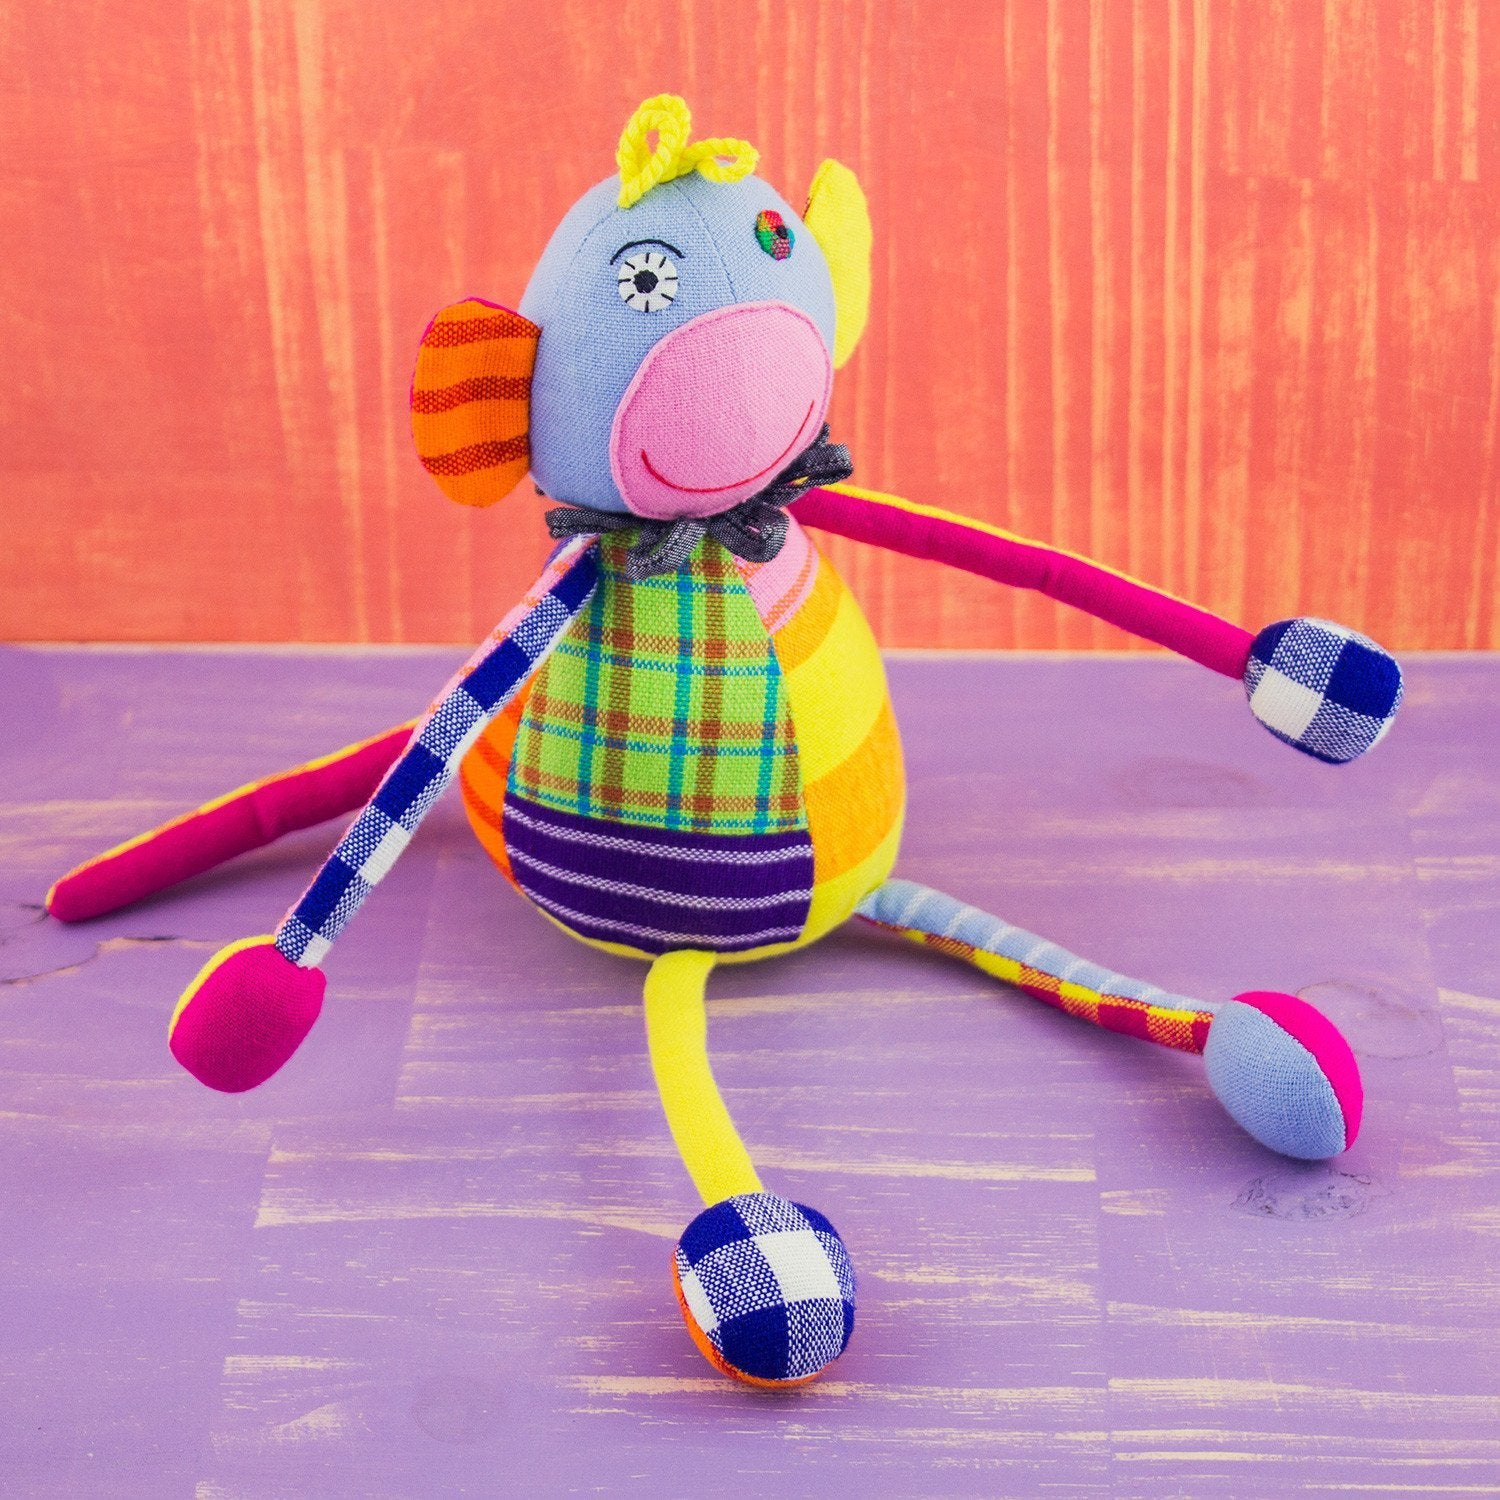 soft monkey shaped doll , monkey  is constructed of quilt like patches, giving it many colors and patterns